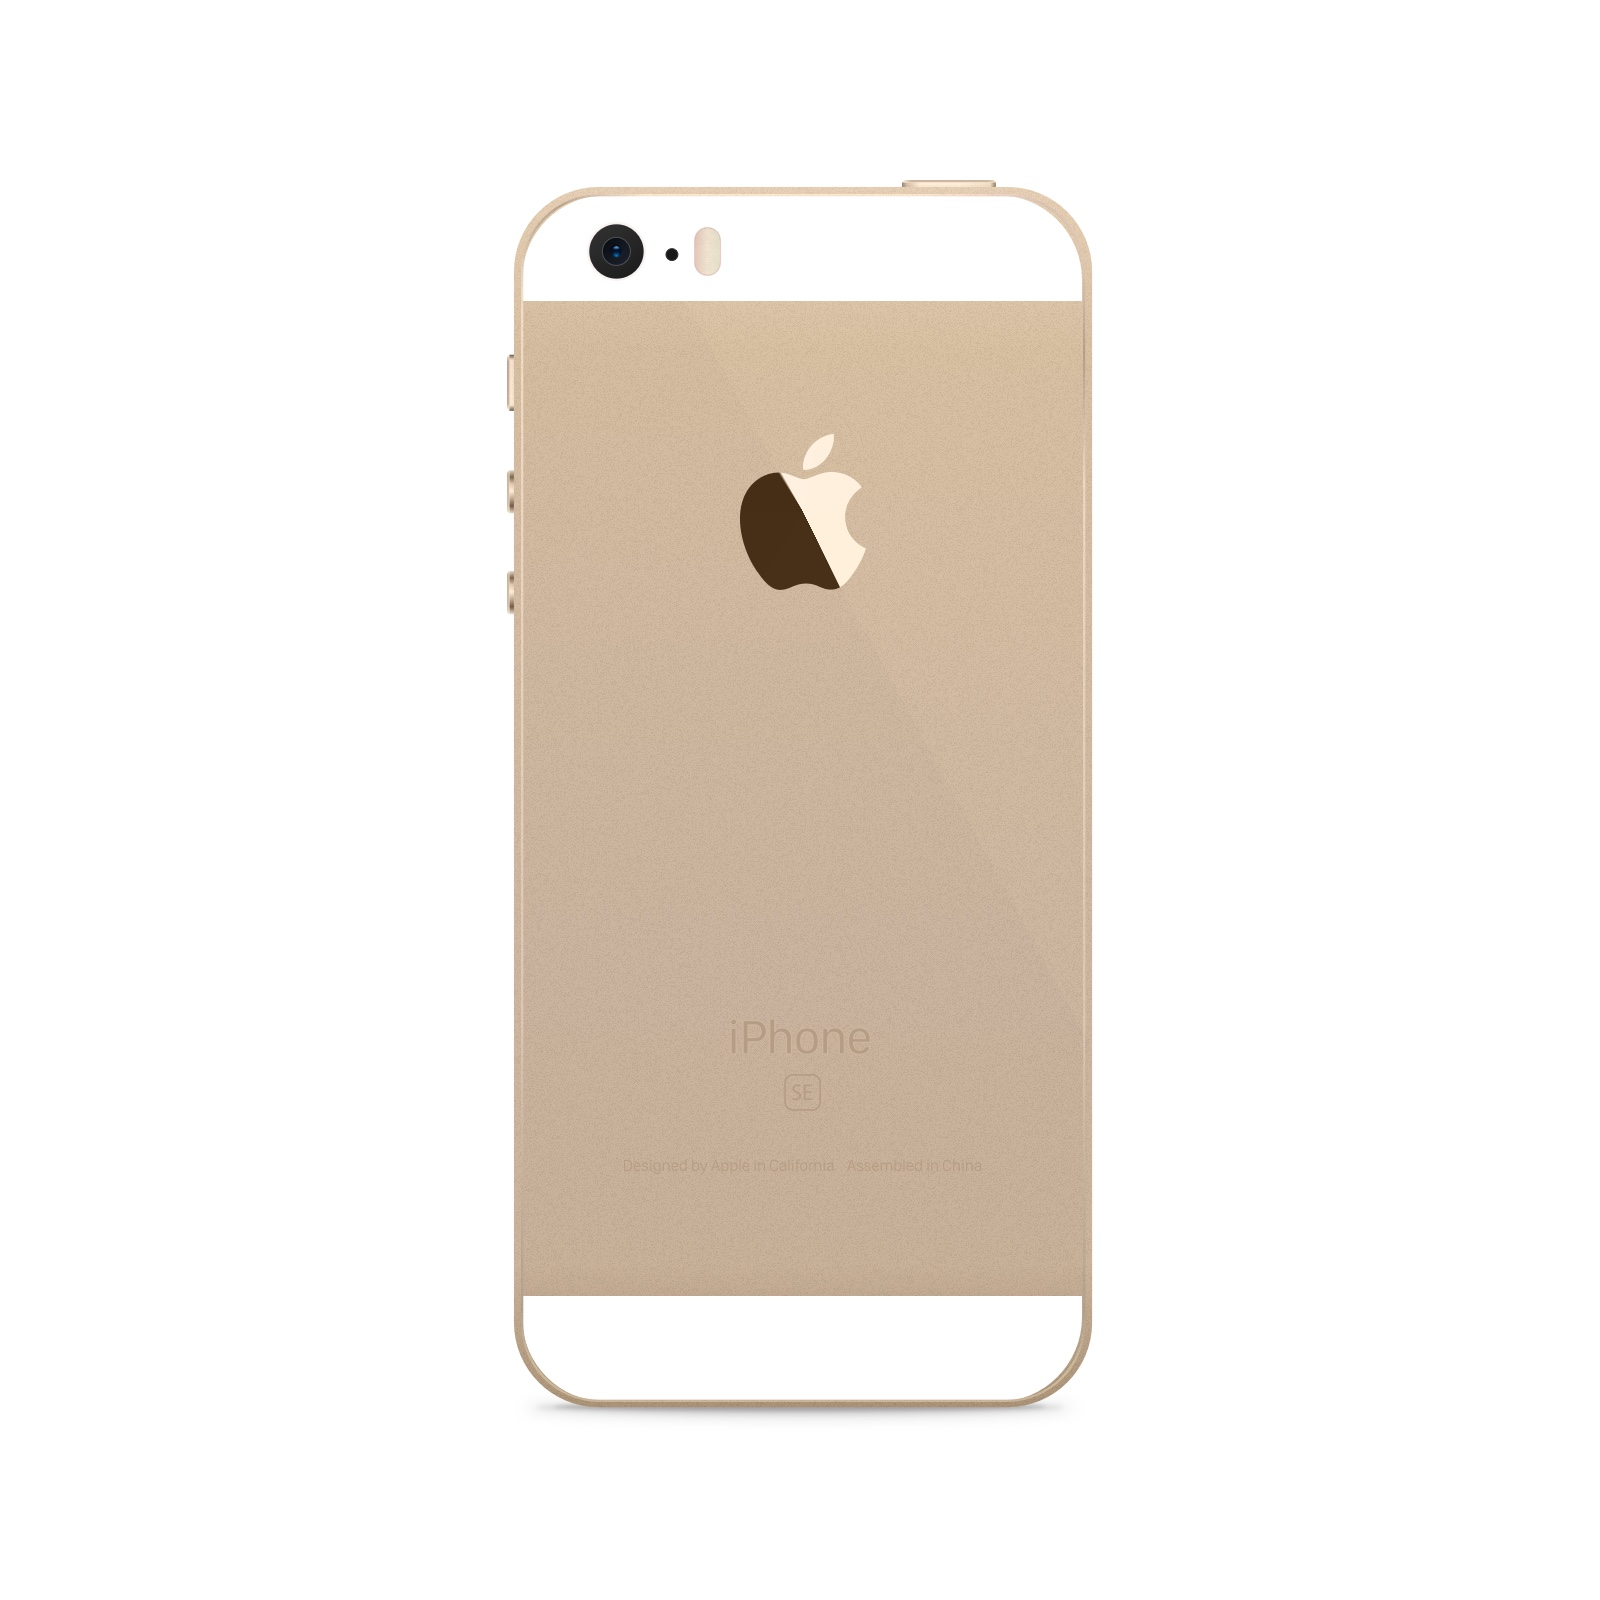 iPhone SE undefinedGB Gold